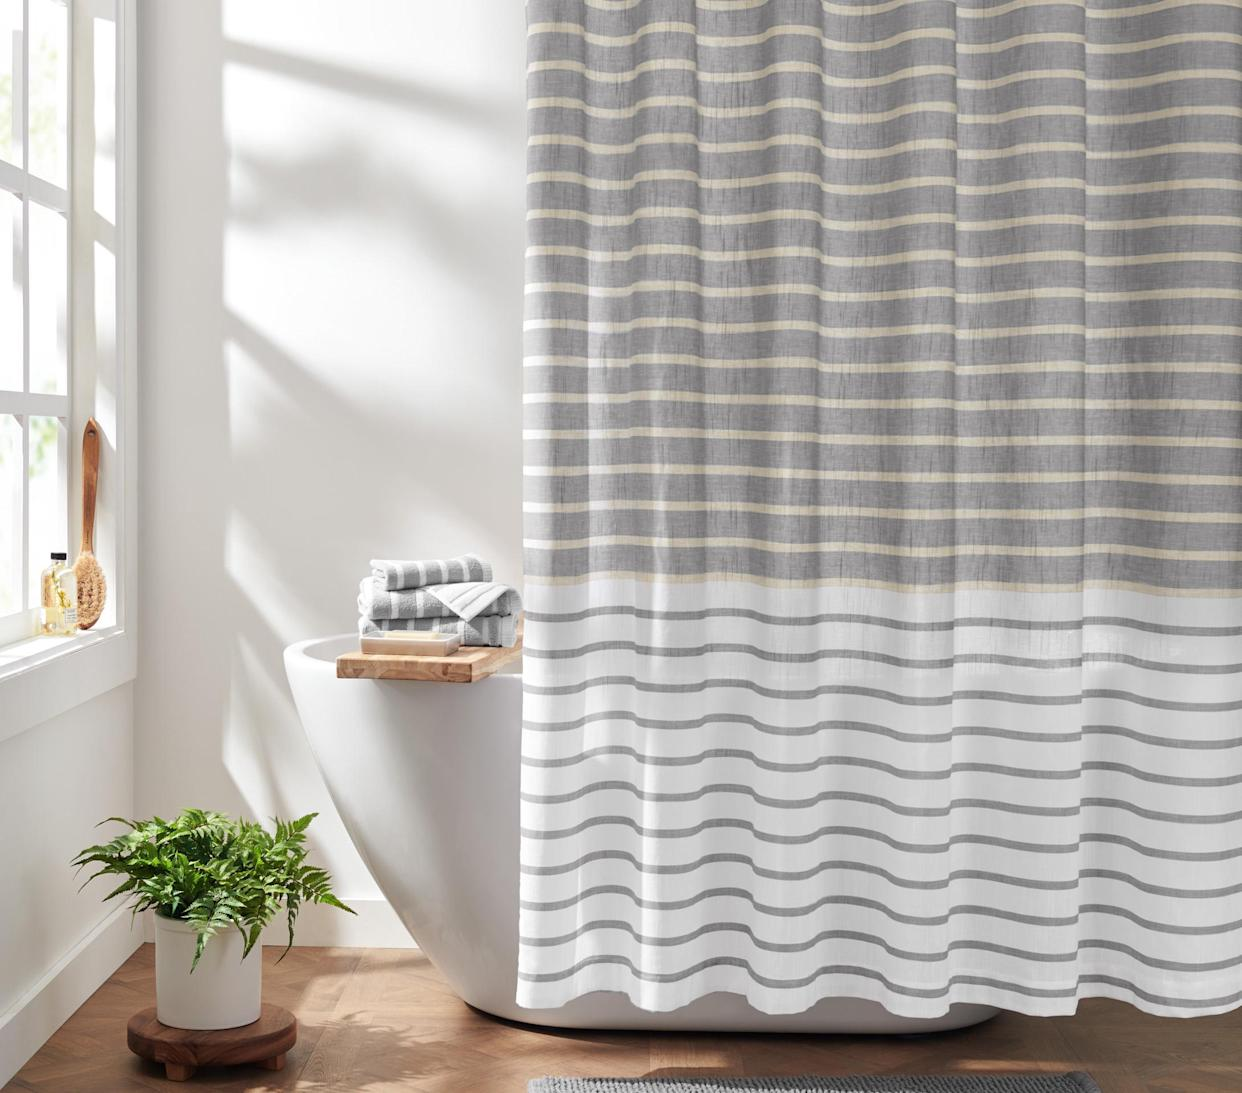 Classic chic, right in your bathroom. (Photo: Walmart)